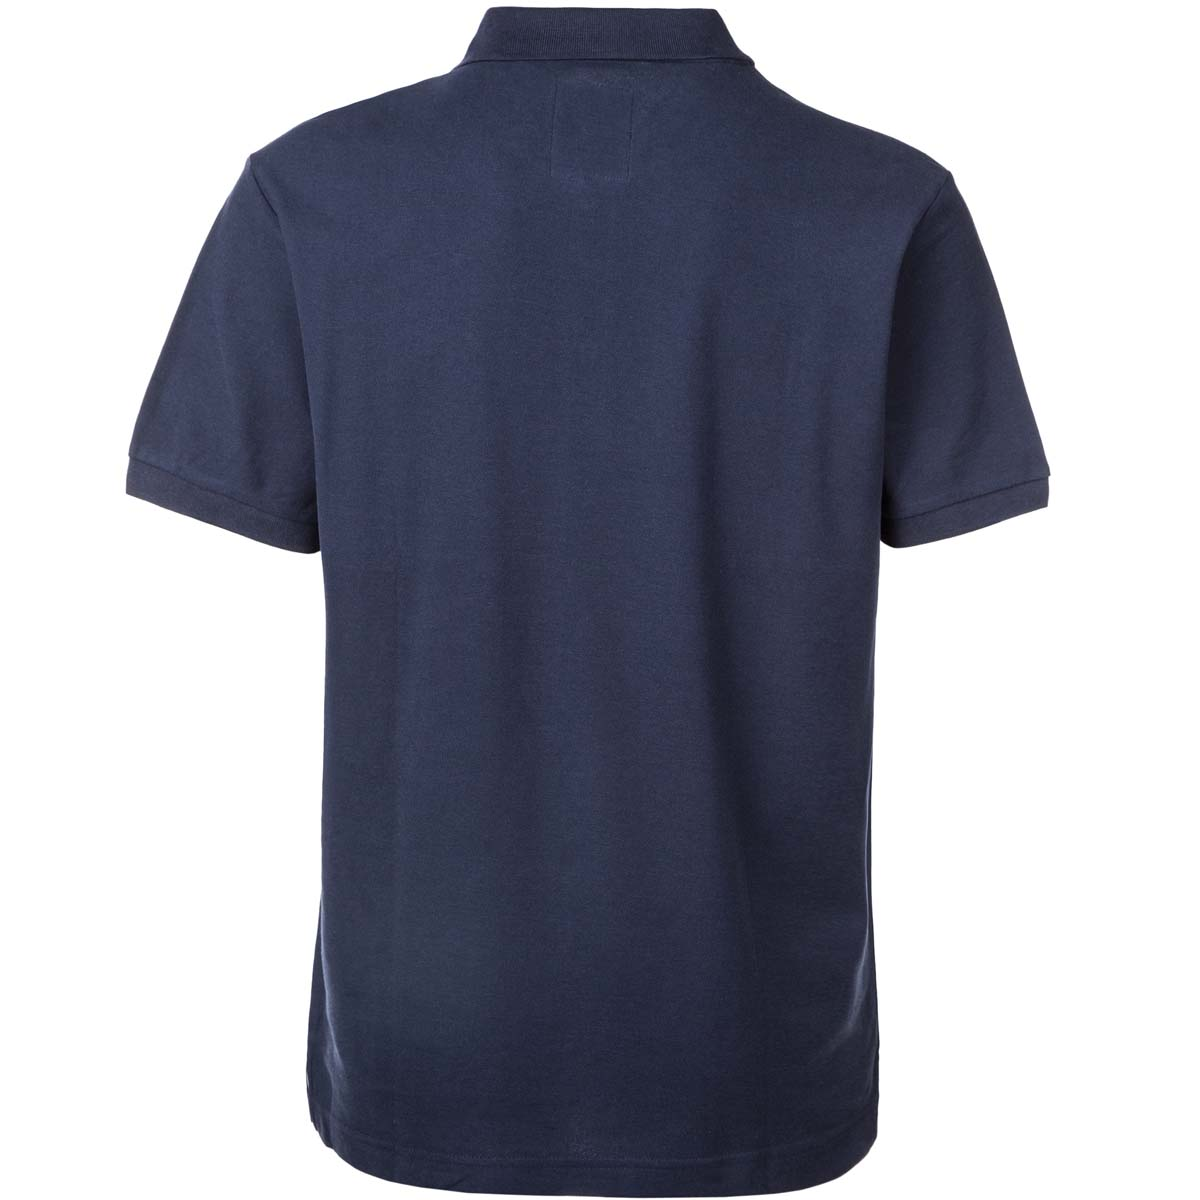 Fort Lauderdale Simon Polo T-shirt Herre